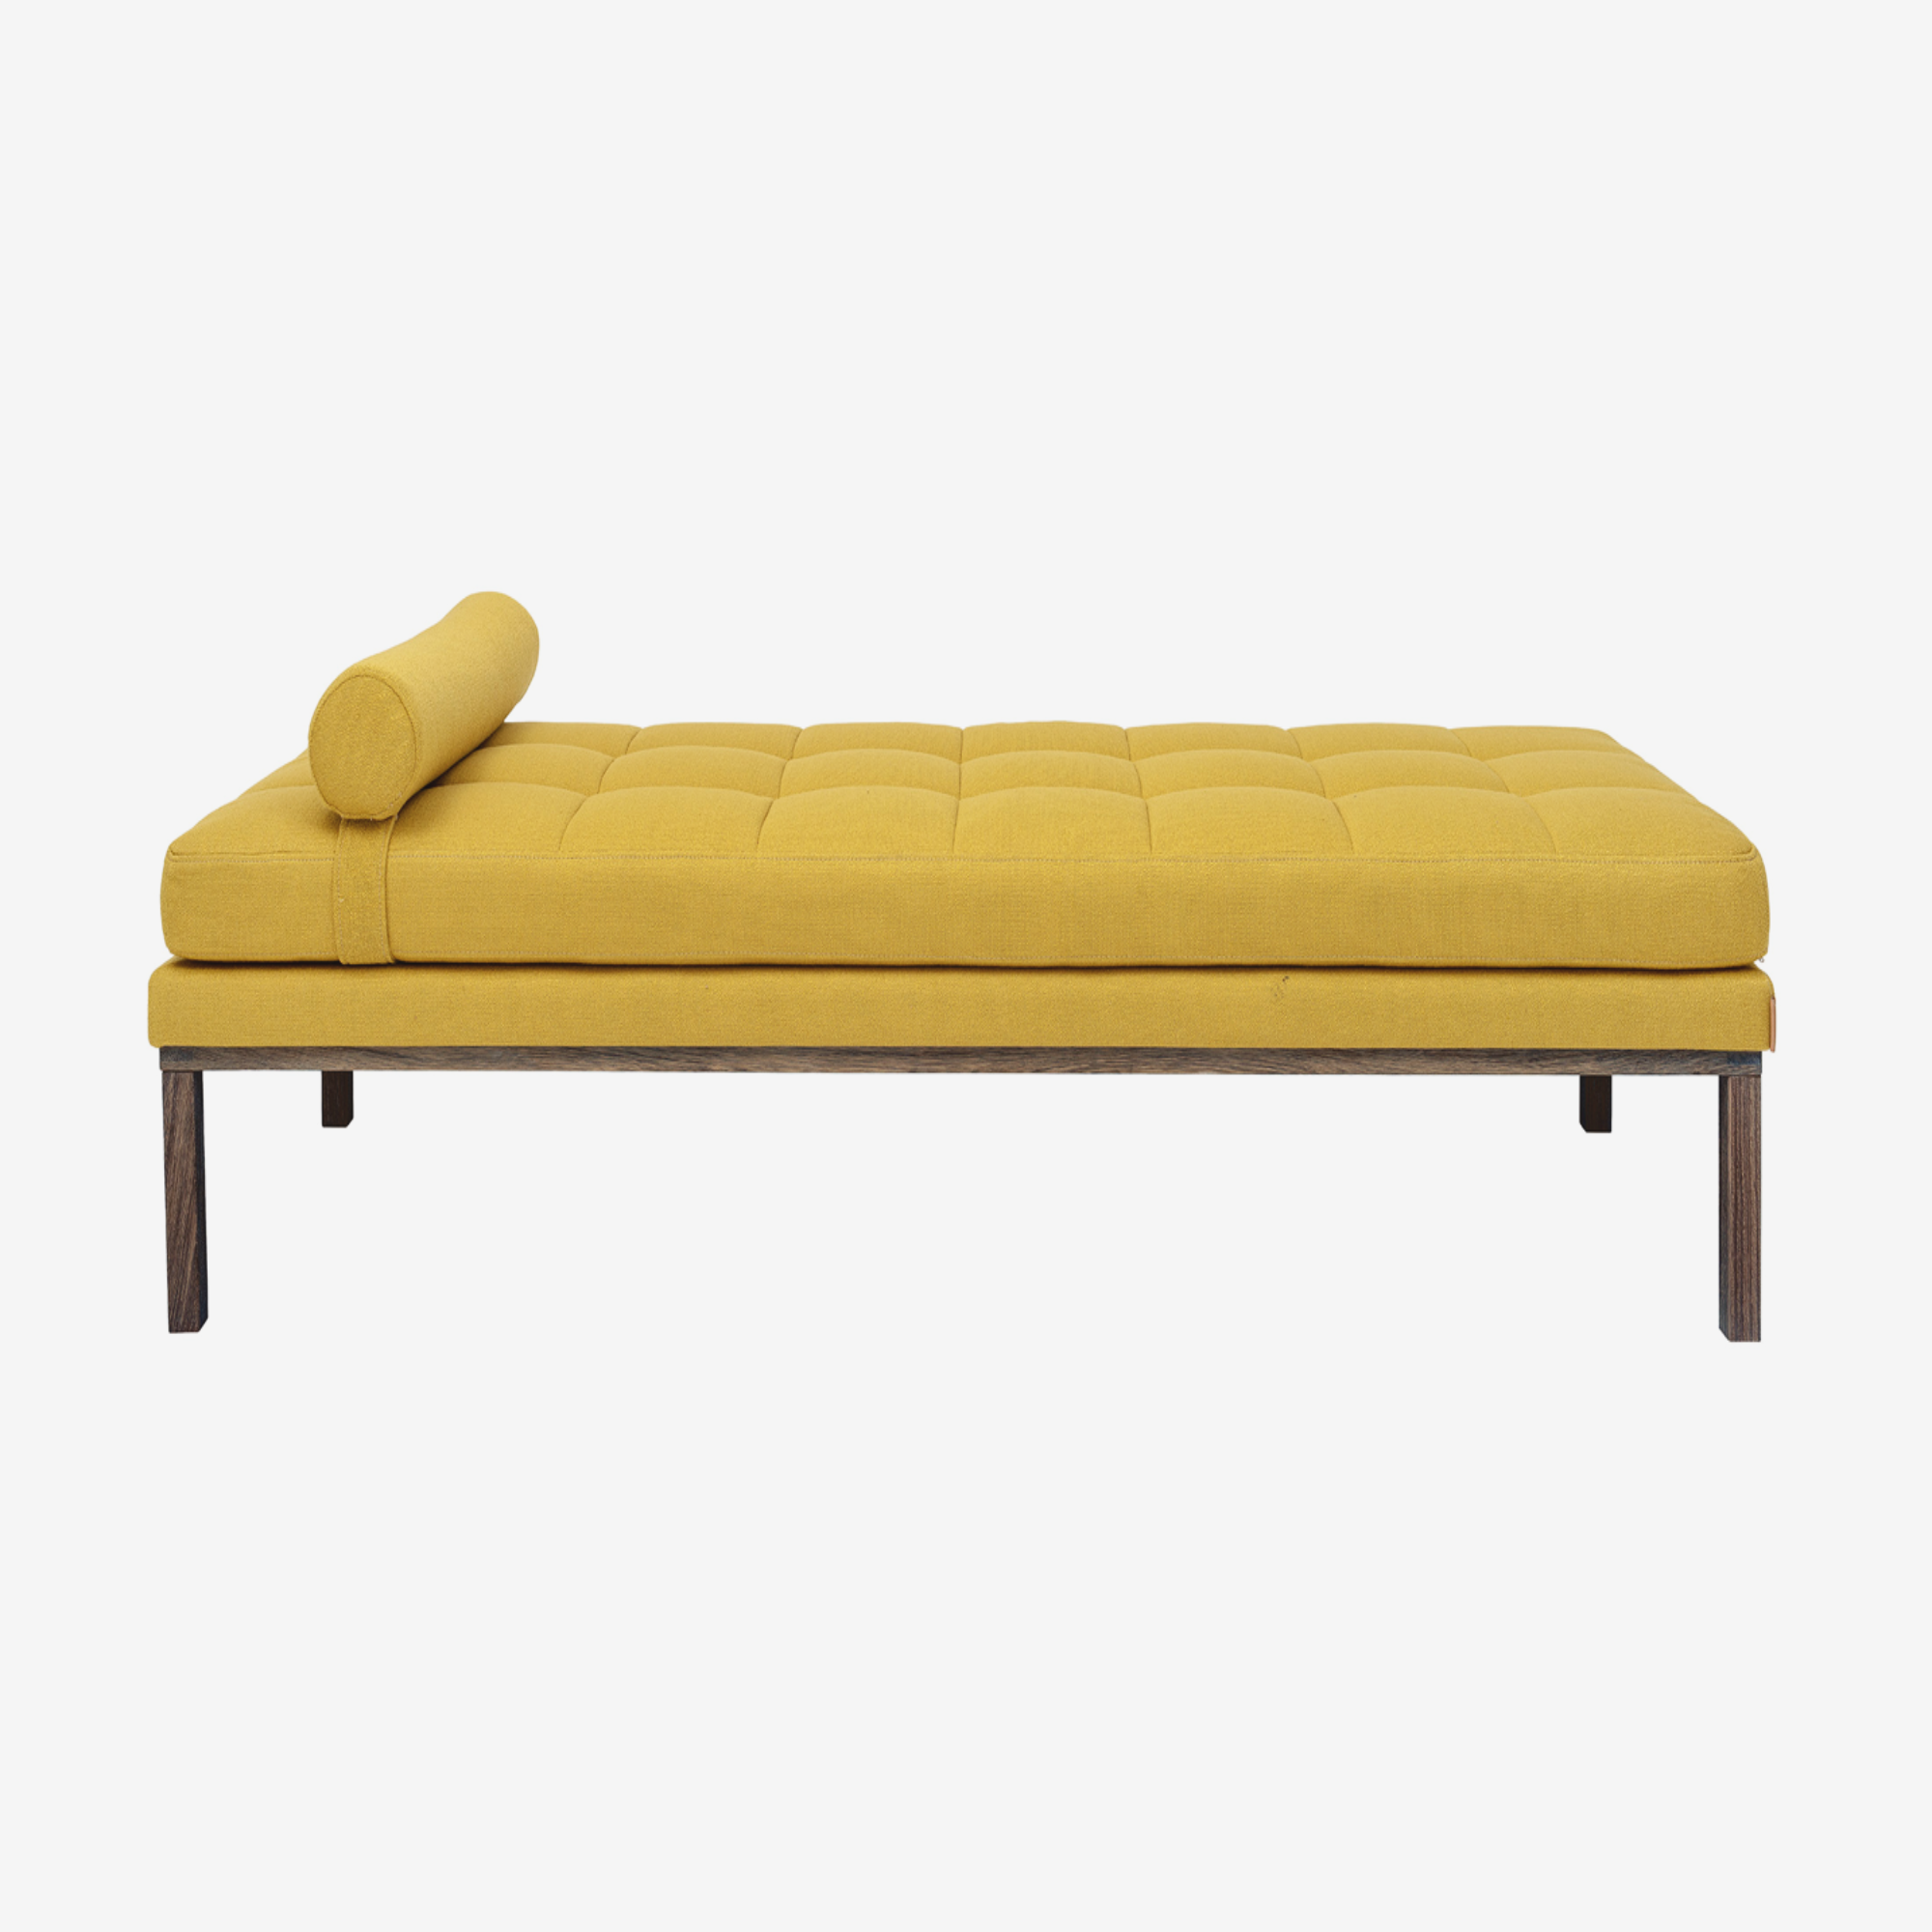 Cita daybed, gul, polyester fra bloomingville fra nordlyhome.dk